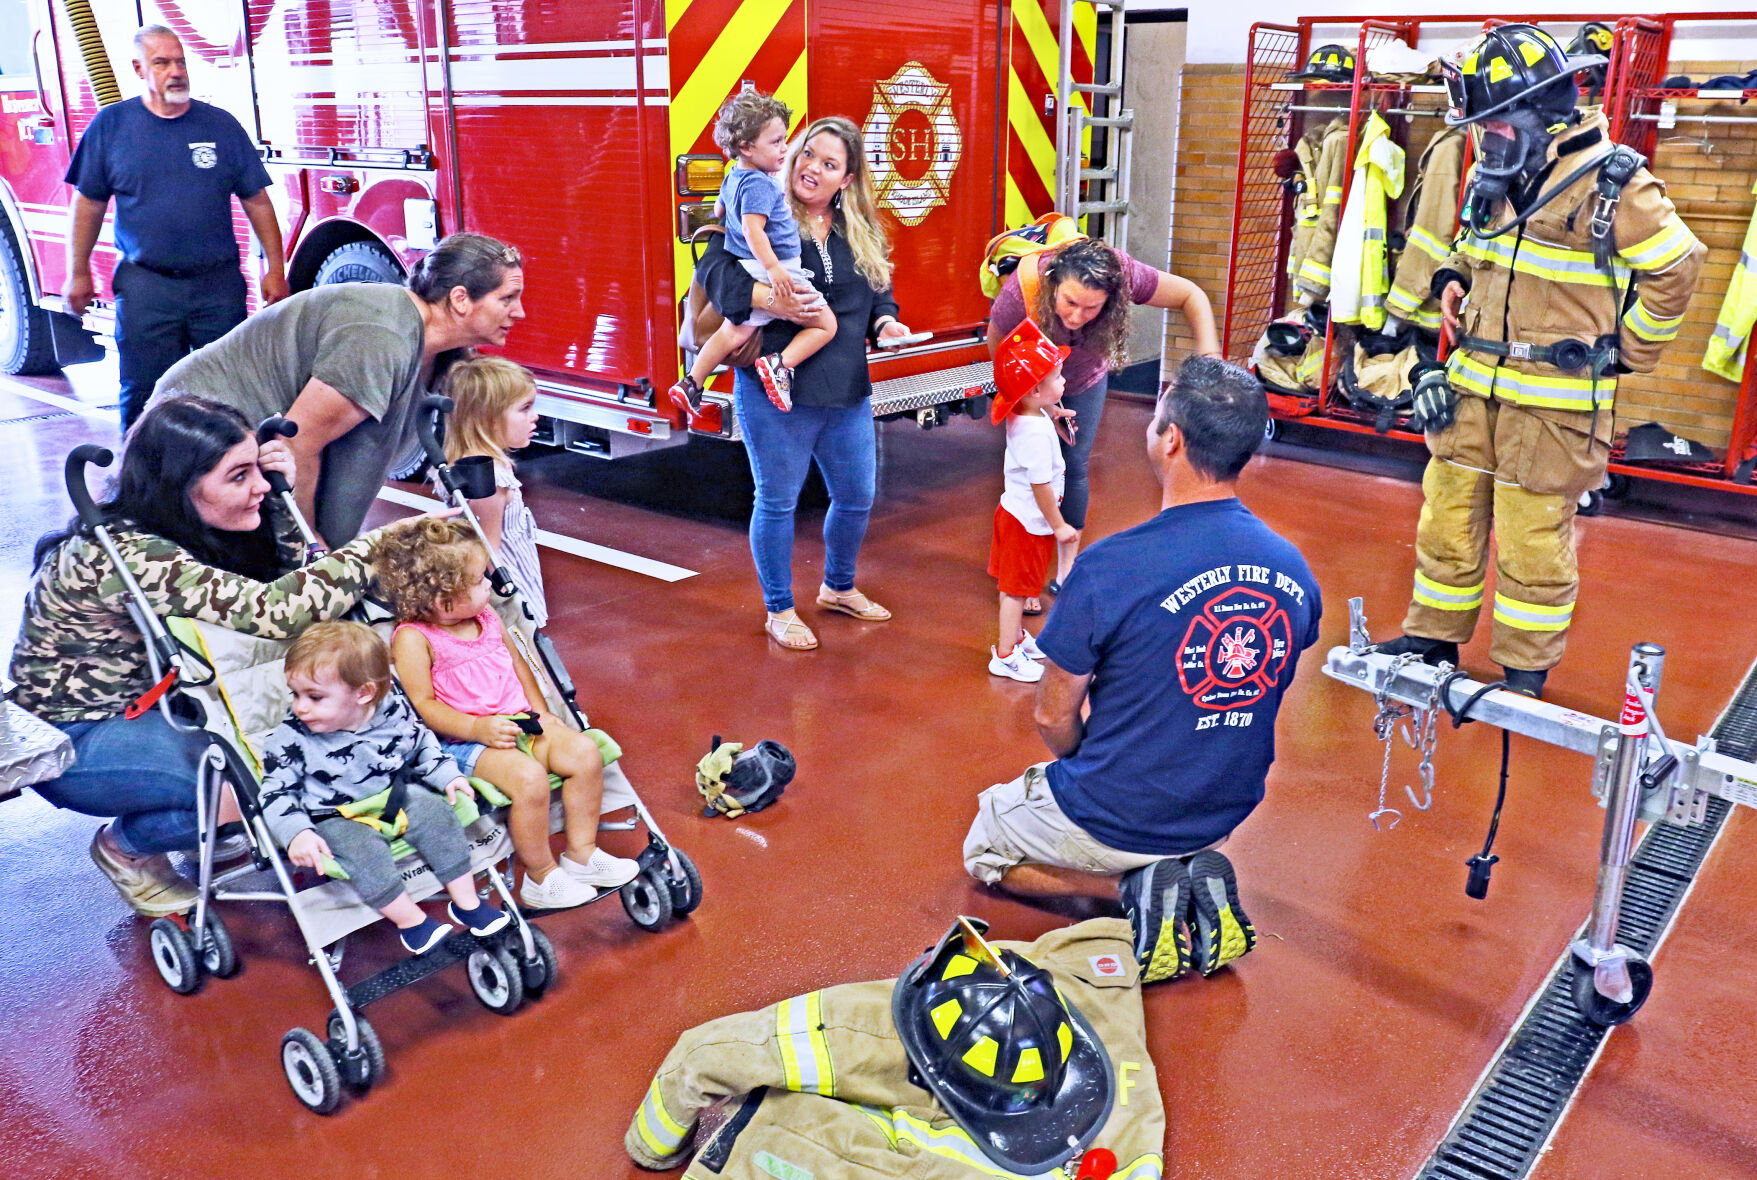 Local fire services turn a focus to recruitment, retention of volunteers